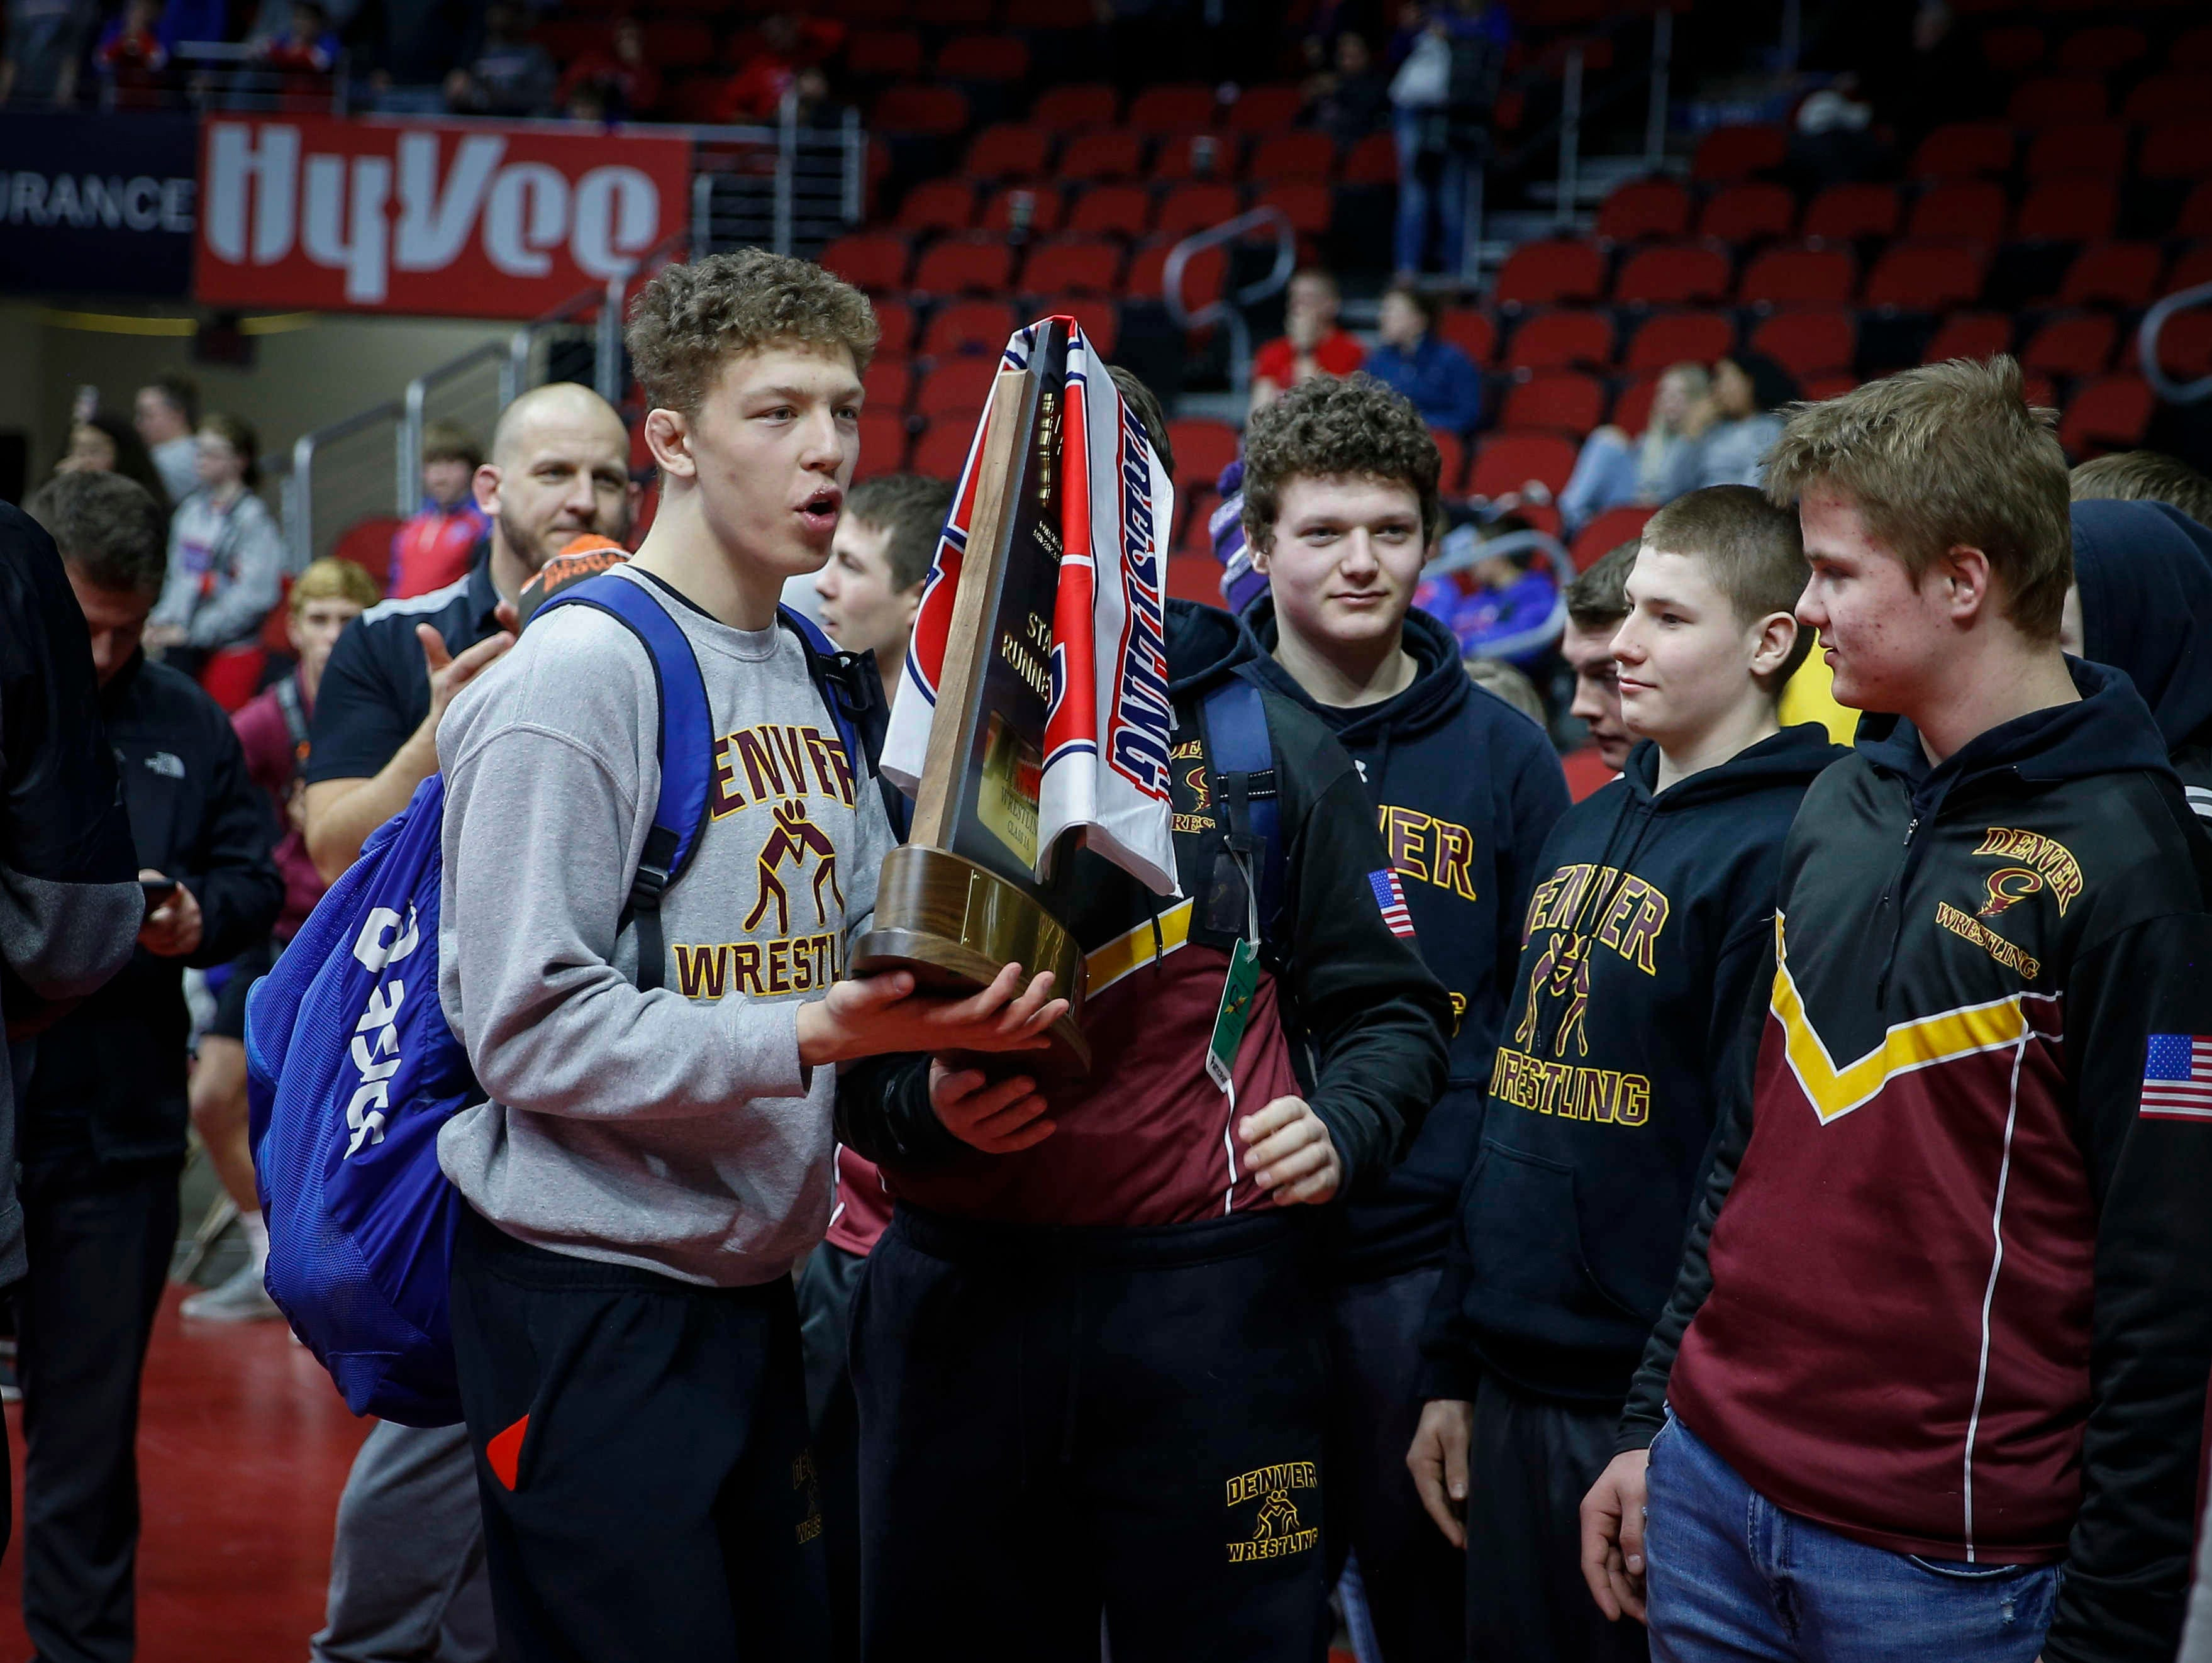 Members of the Denver wrestling team hold the Class 1A runner up trophy during the 2019 Iowa high school dual wrestling state tournament on Wednesday, Feb. 13, 2019, at Wells Fargo Arena in Des Moines.